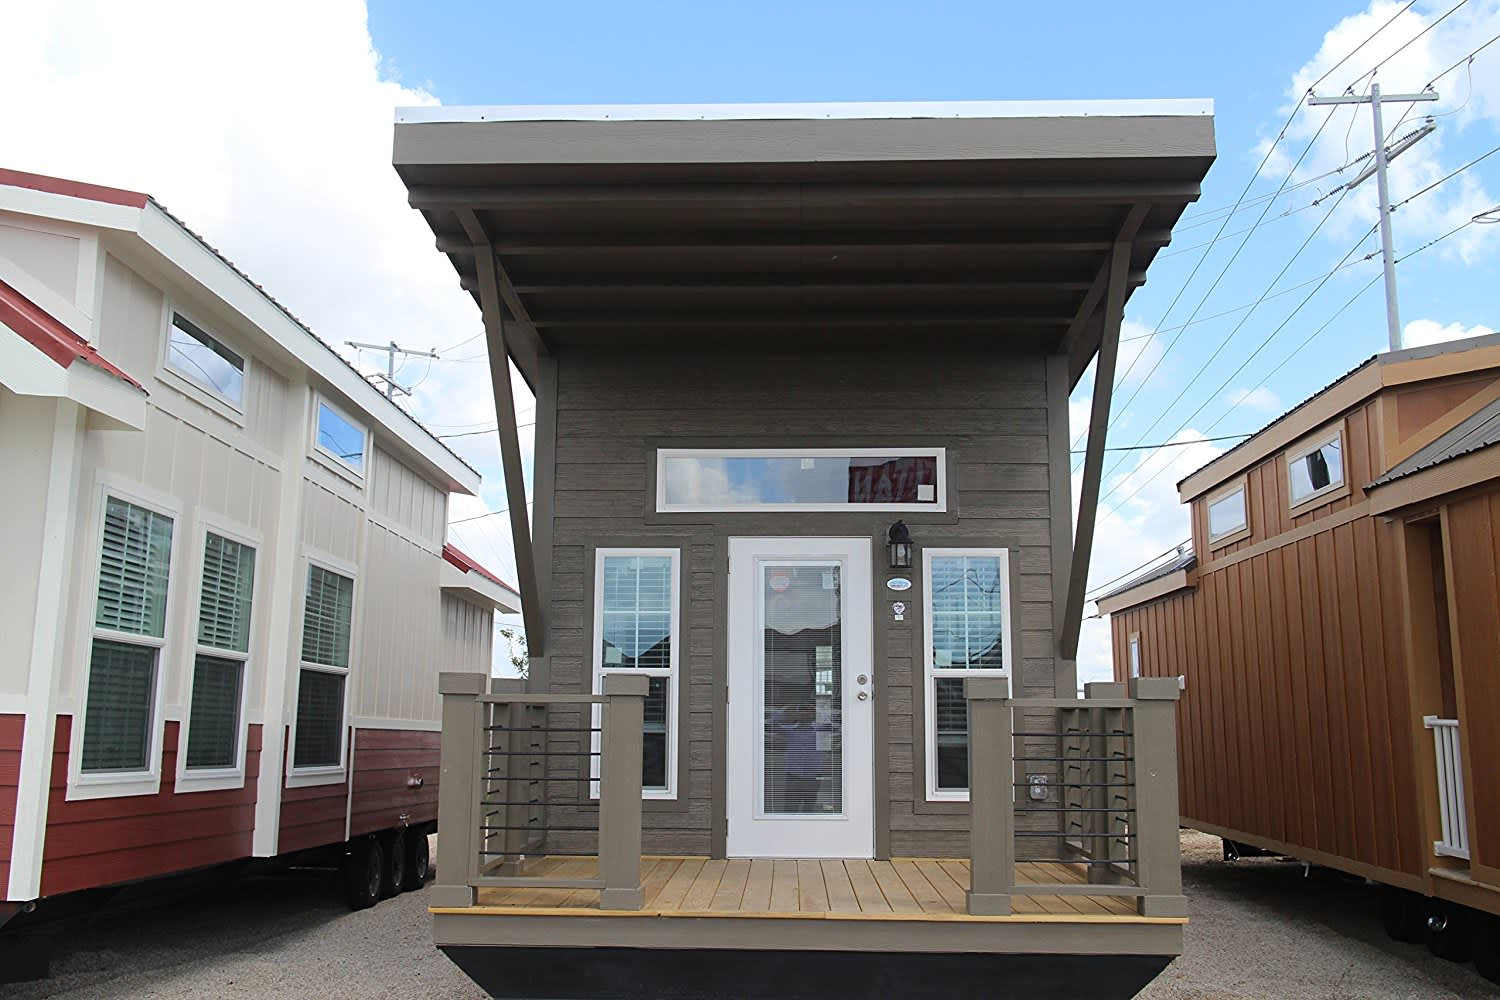 You Can Buy This Gorgeous 399 Sq. Foot Tiny Home on Amazon